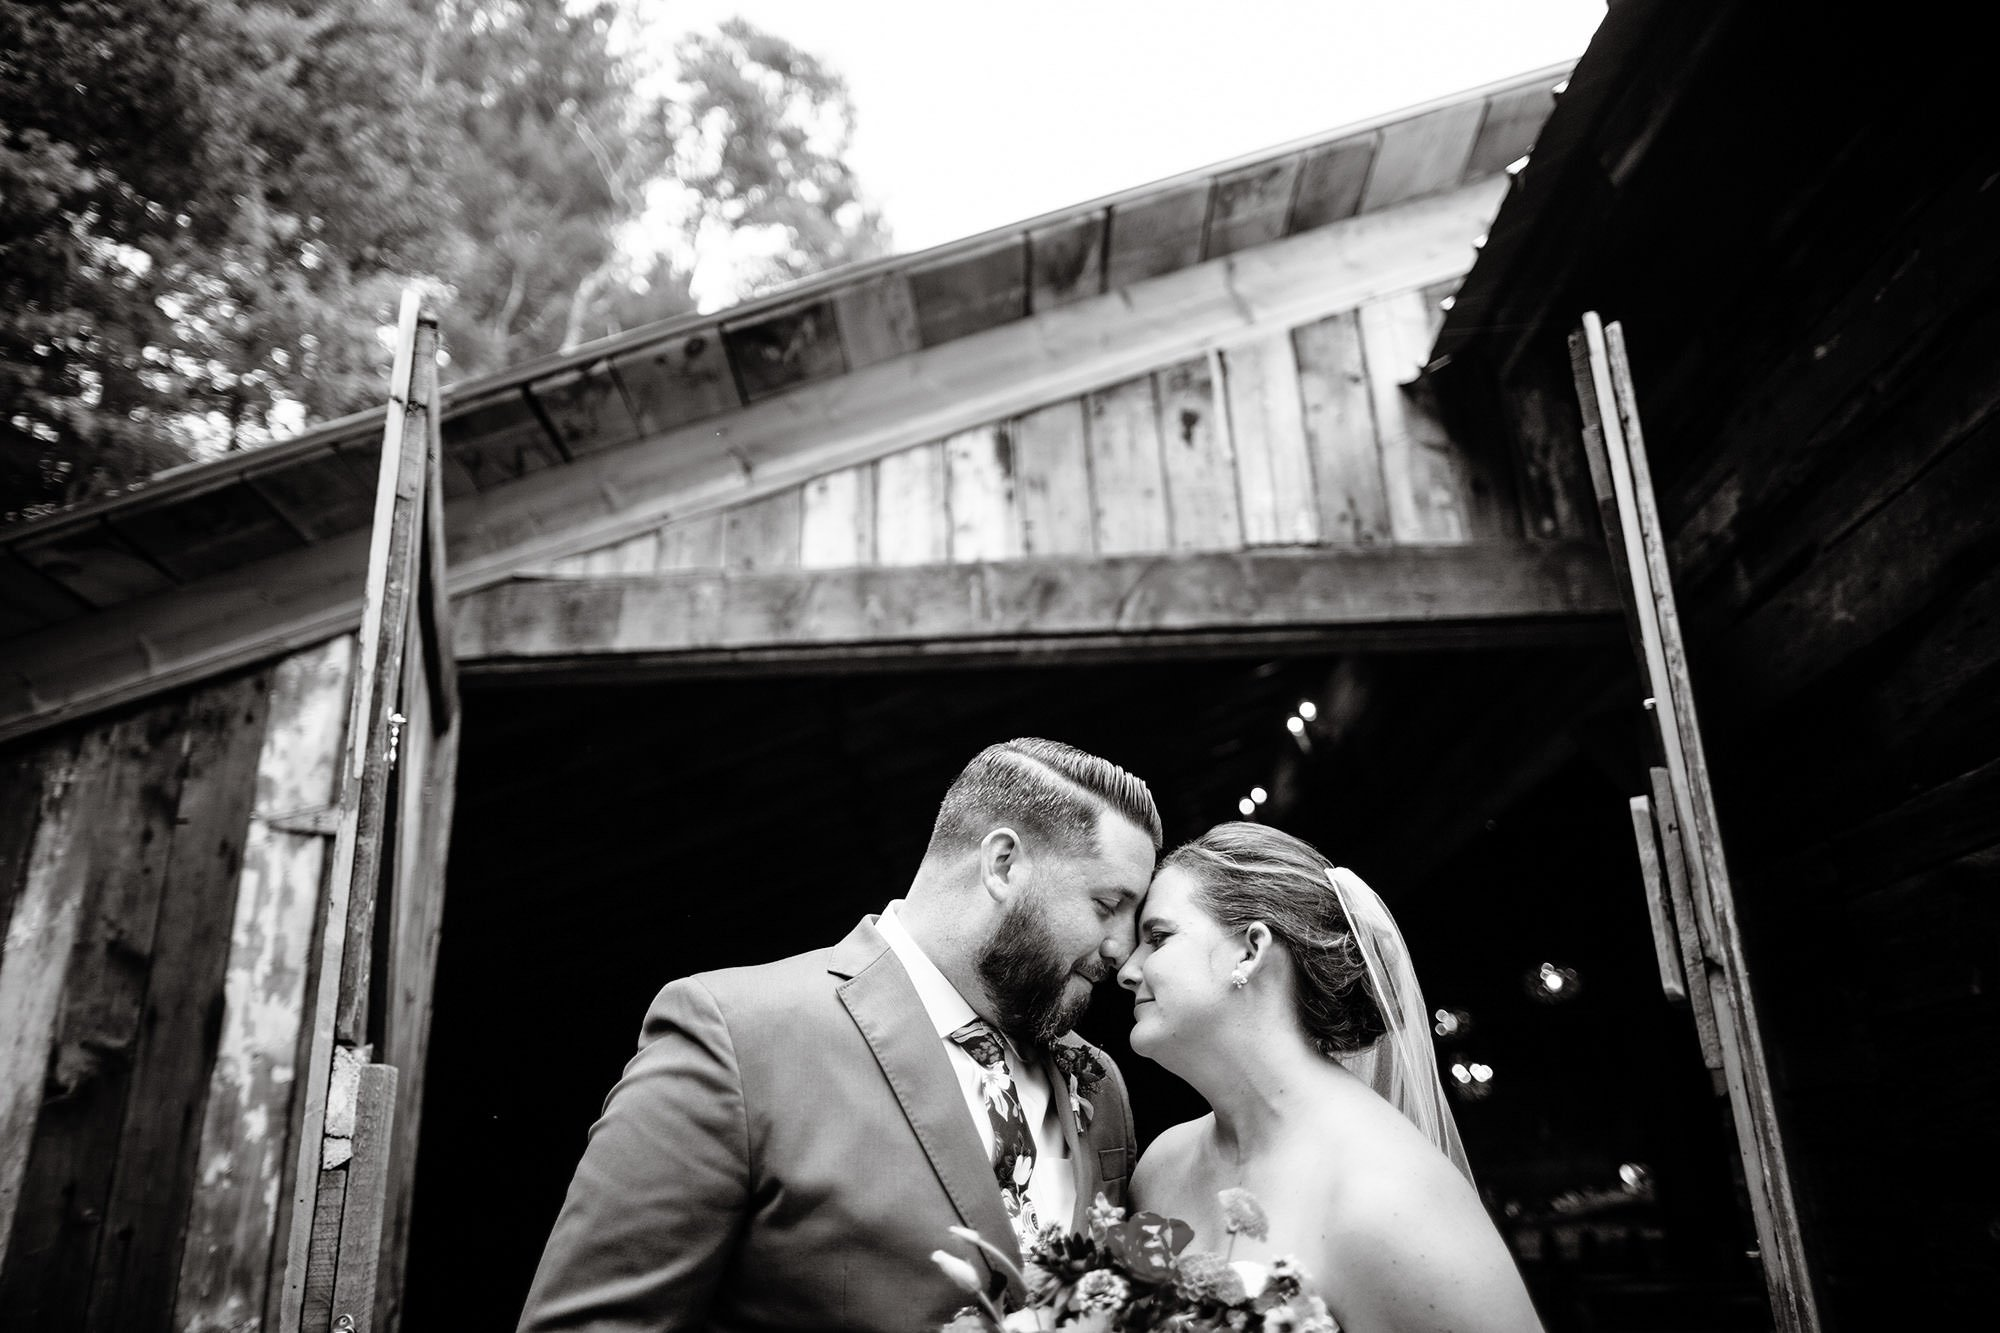 The bride and groom pose on their Bishop Farm wedding day.